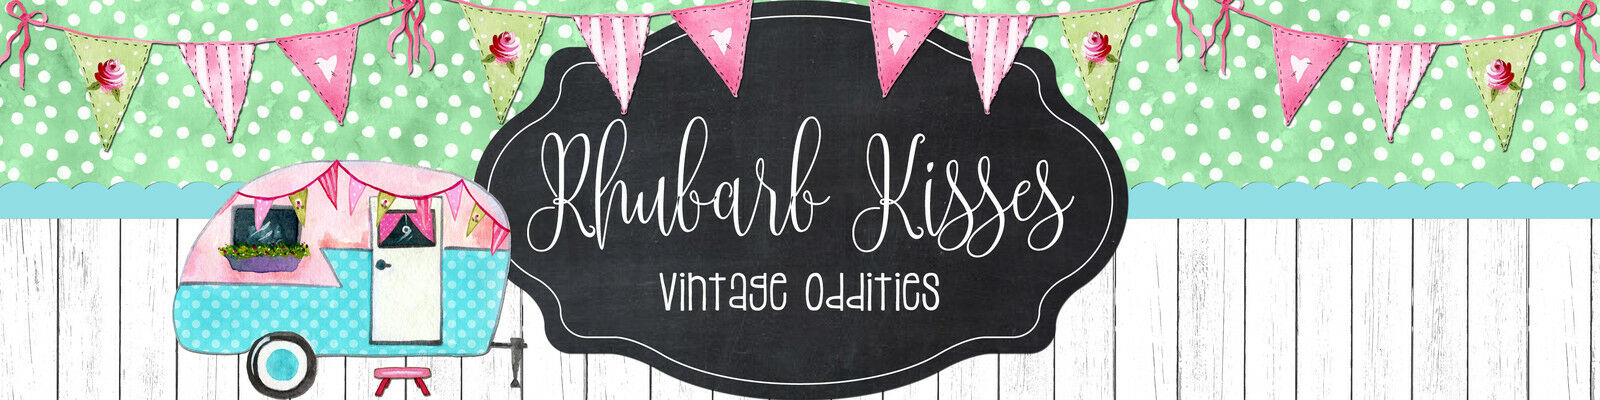 Rhubarb Kisses